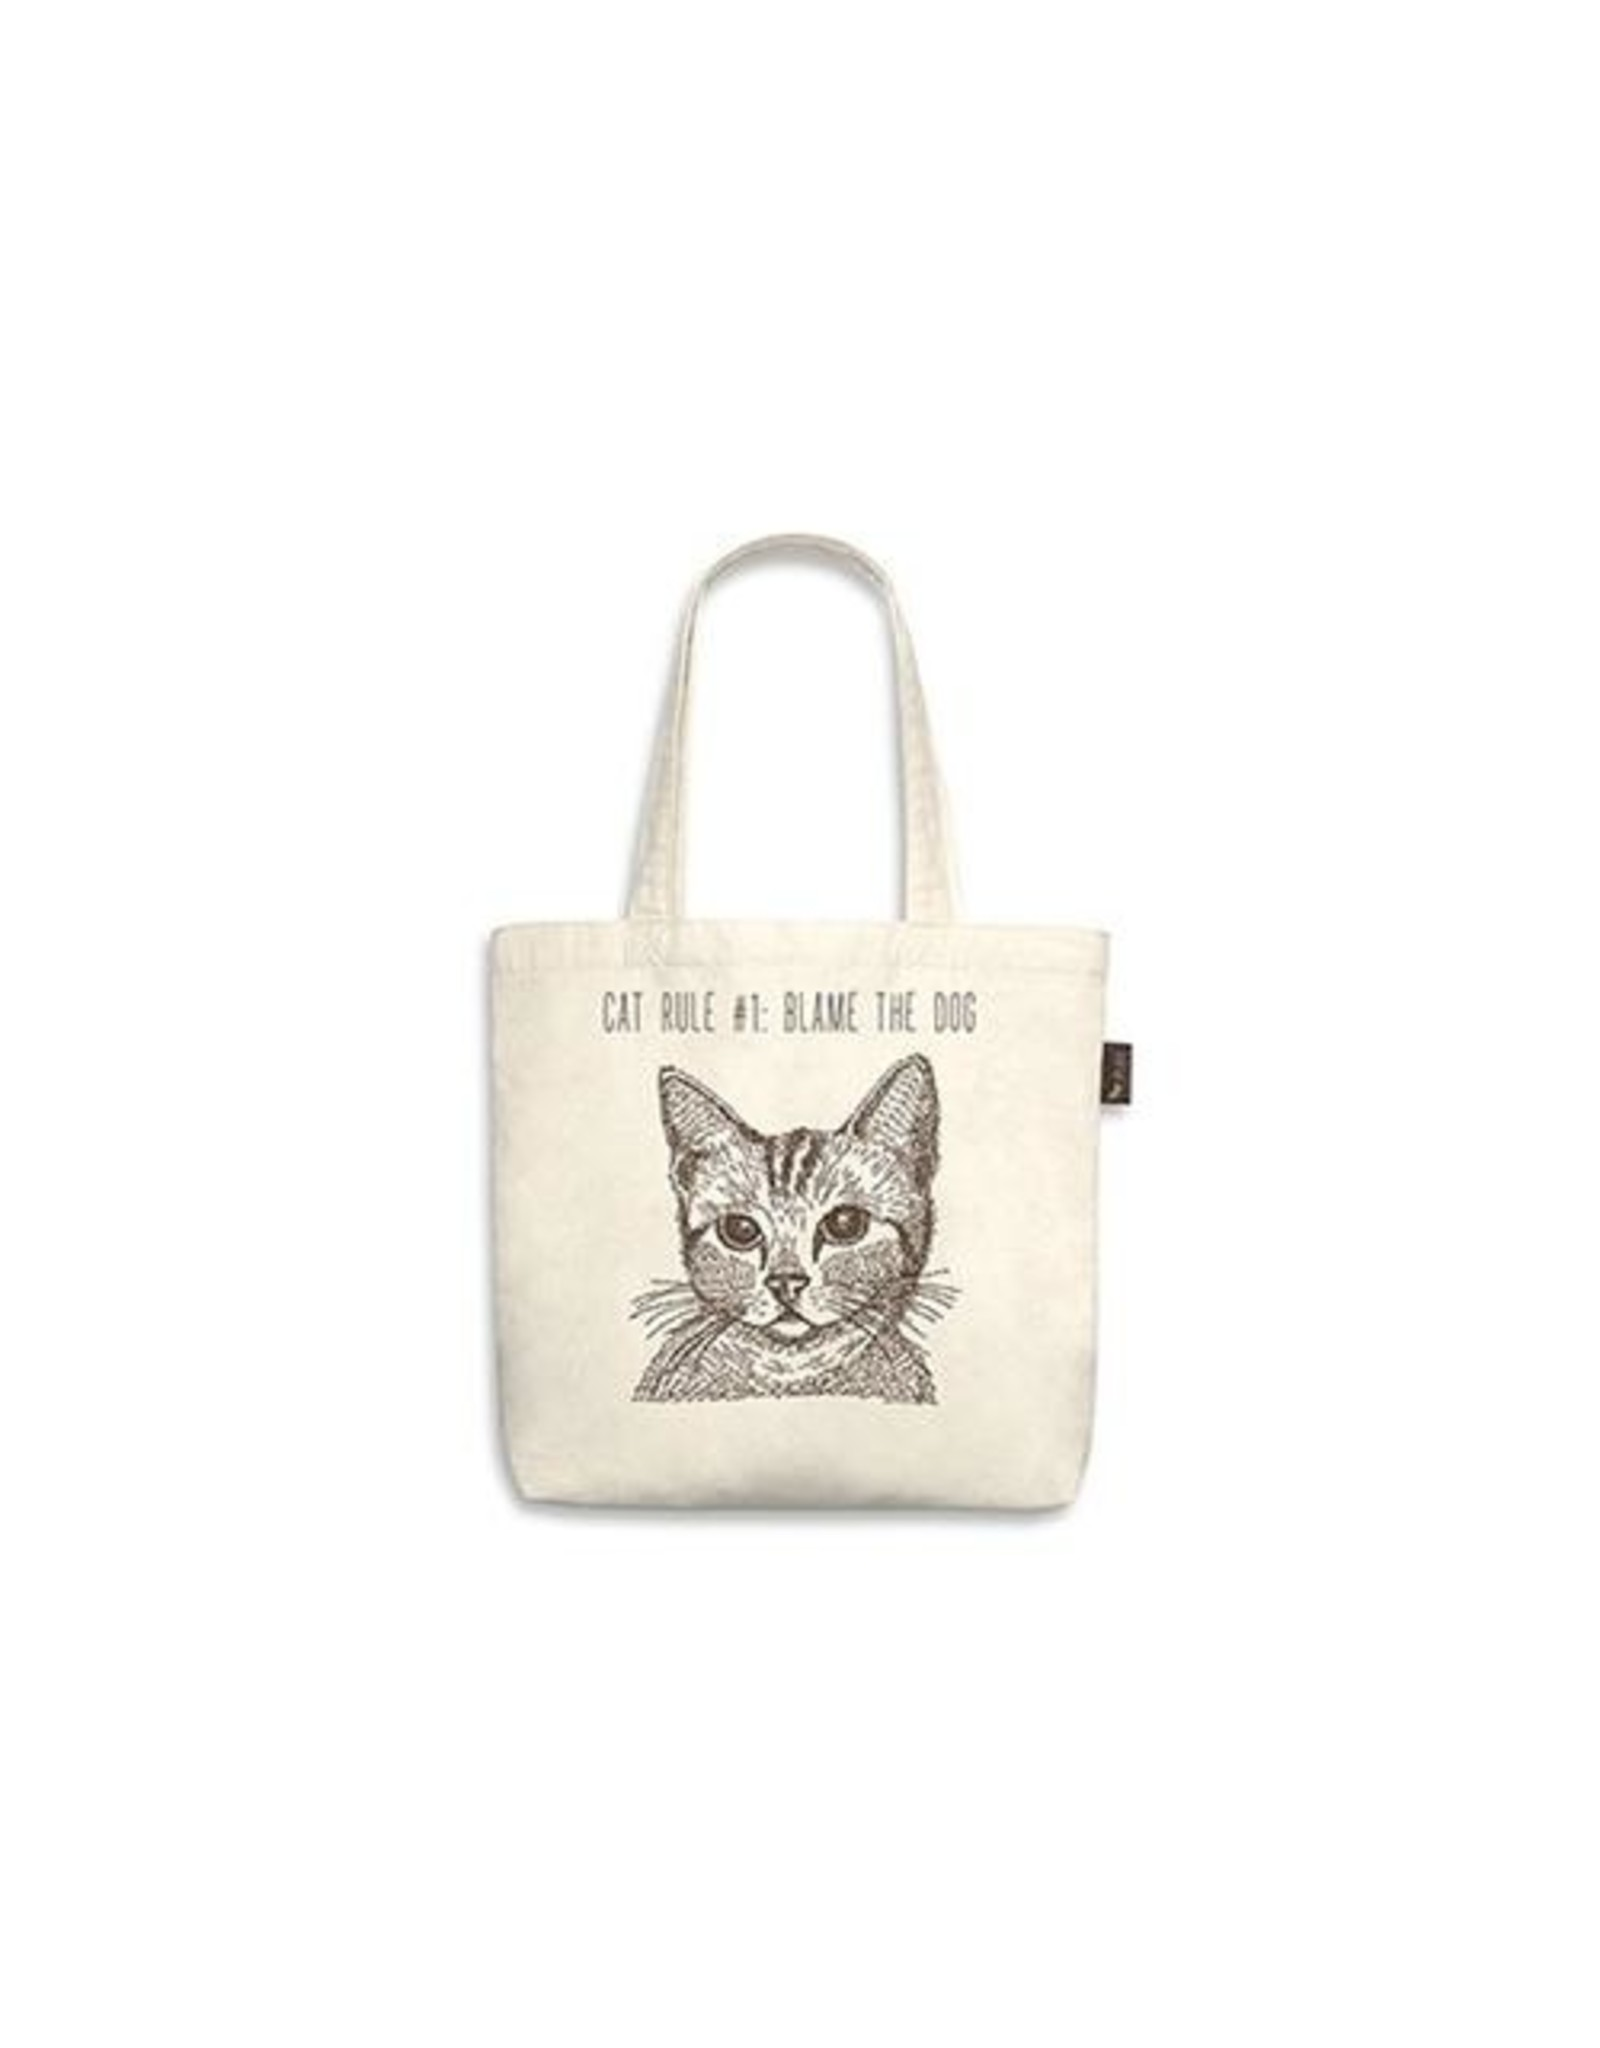 PLAY Tote Bags for Fur Parents